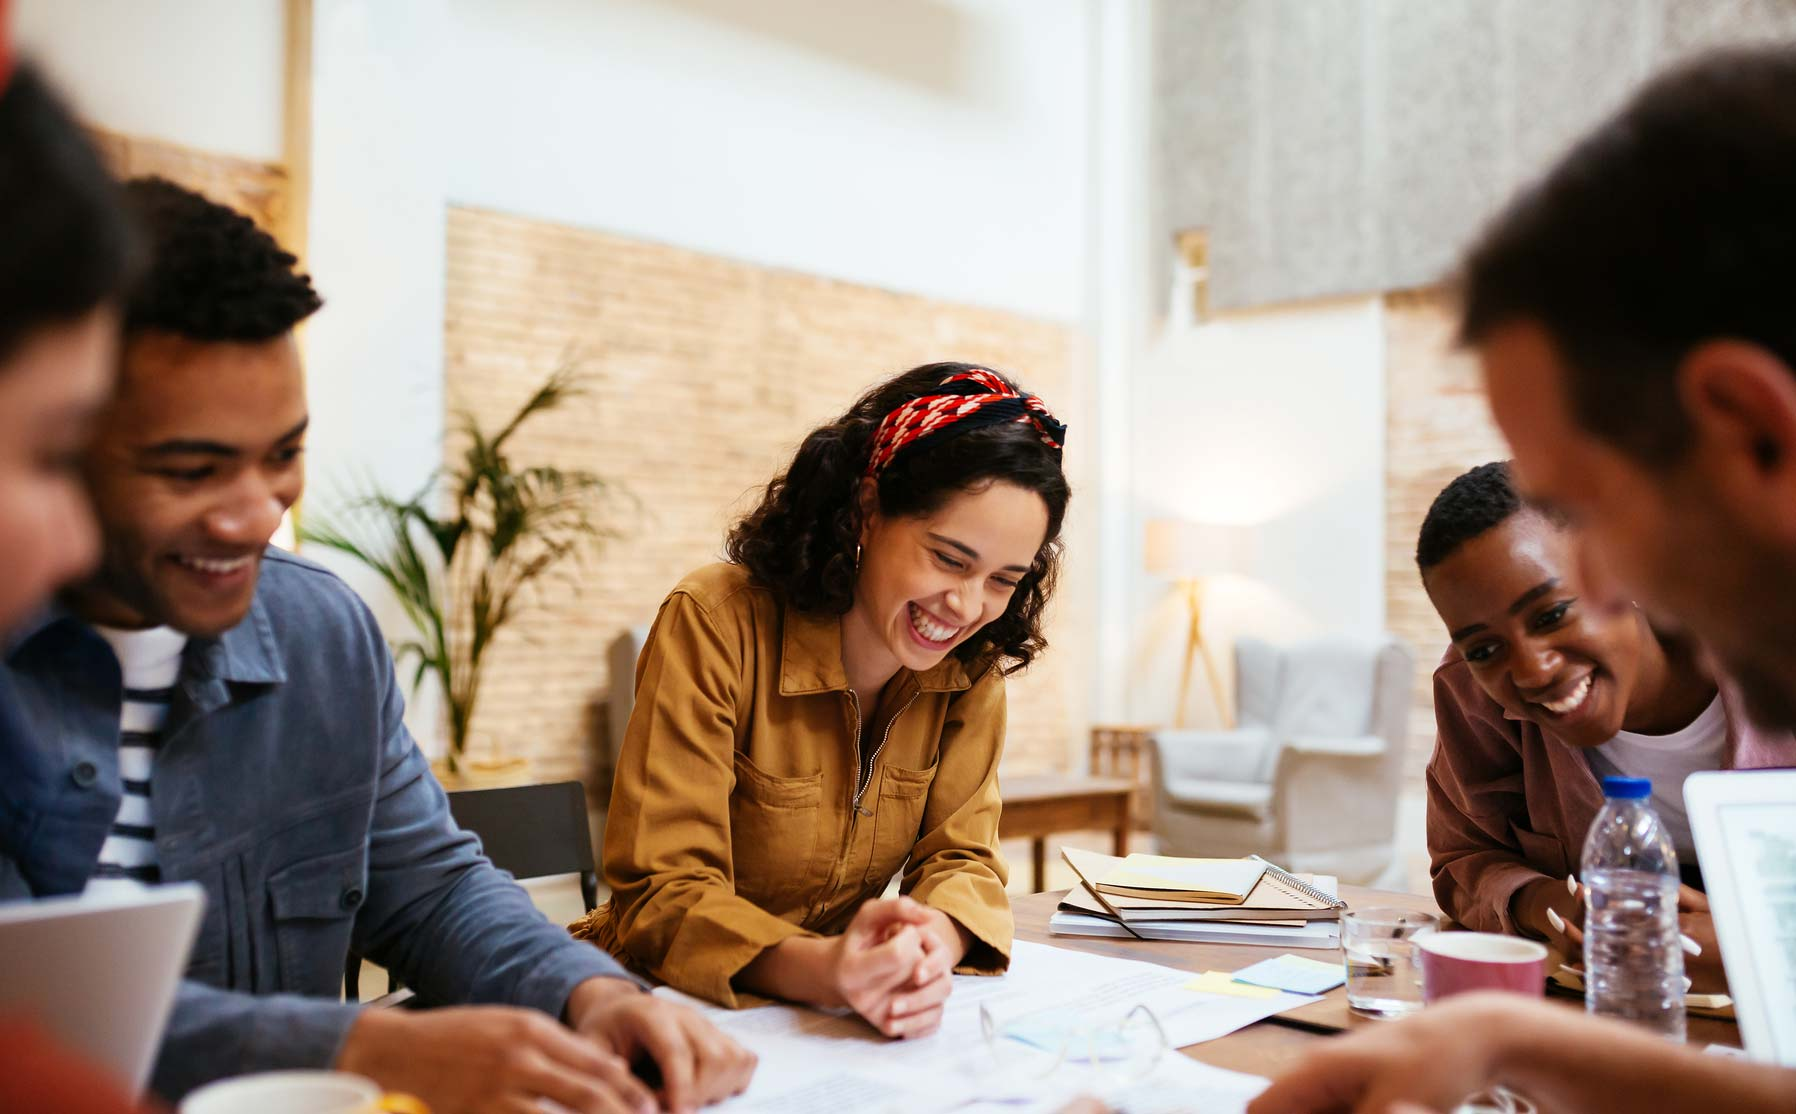 3 ways smart technology helps build a resilient company culture